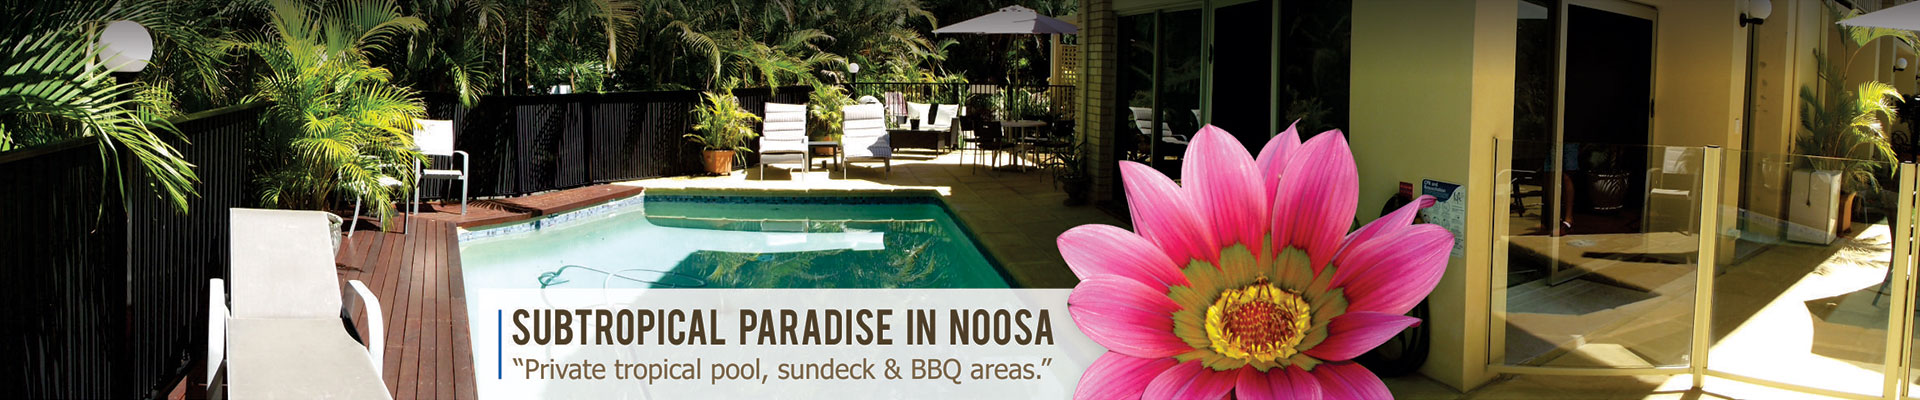 Subtropical paradise in Noosa